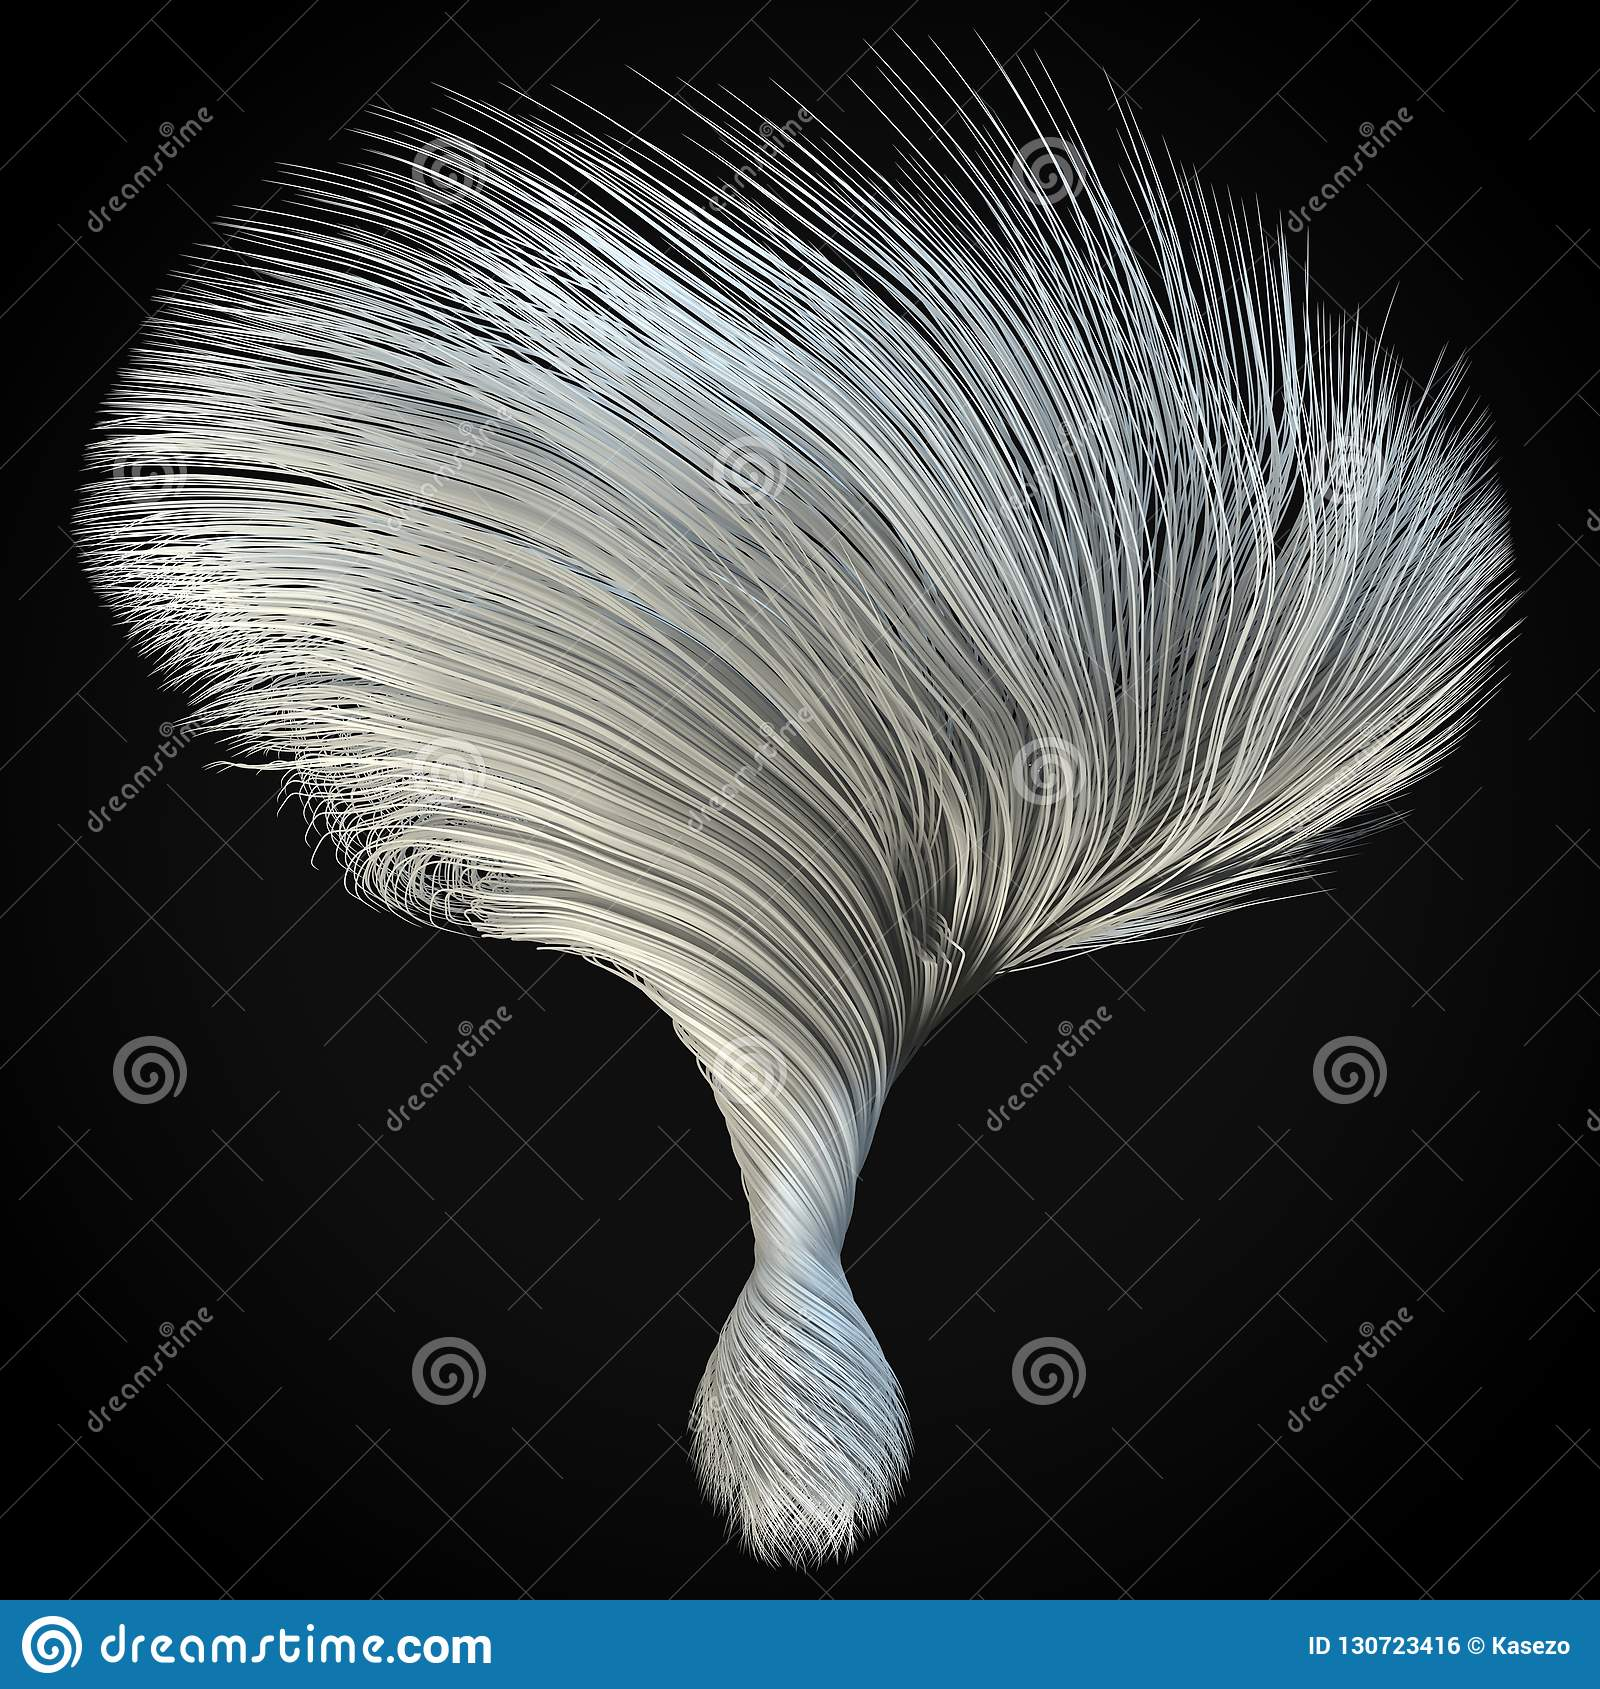 smoothly moving white hair lines 3d illustration stock illustration